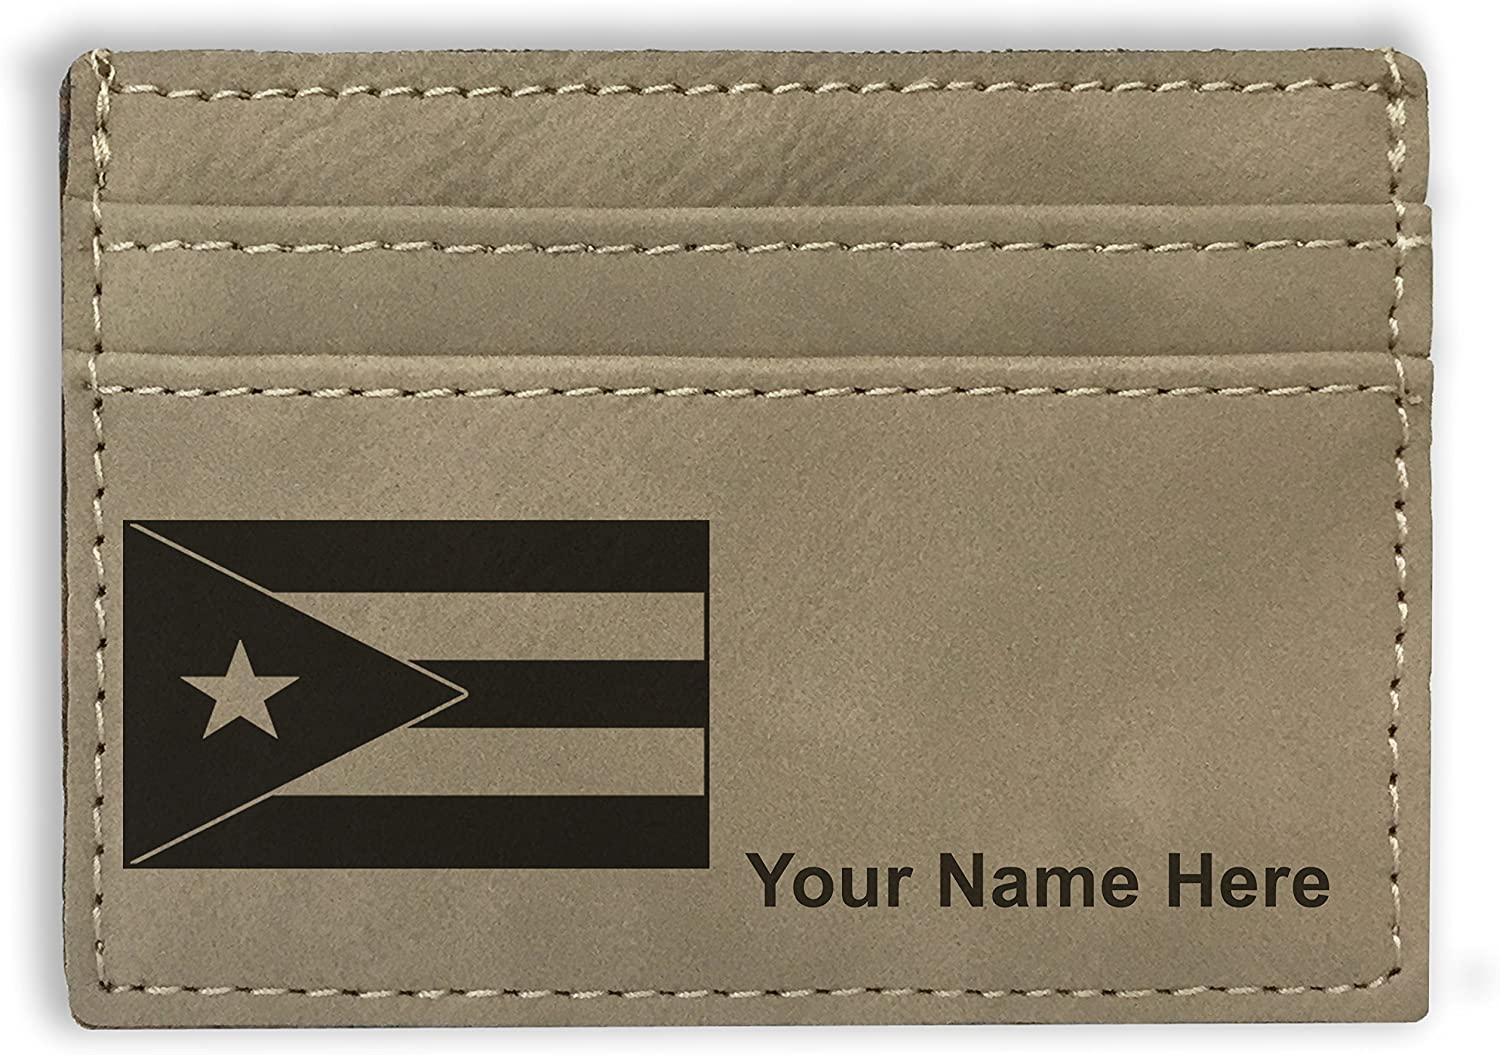 Money Clip Wallet - Flag of Puerto Rico - Personalized Engraving Included (Light Brown)